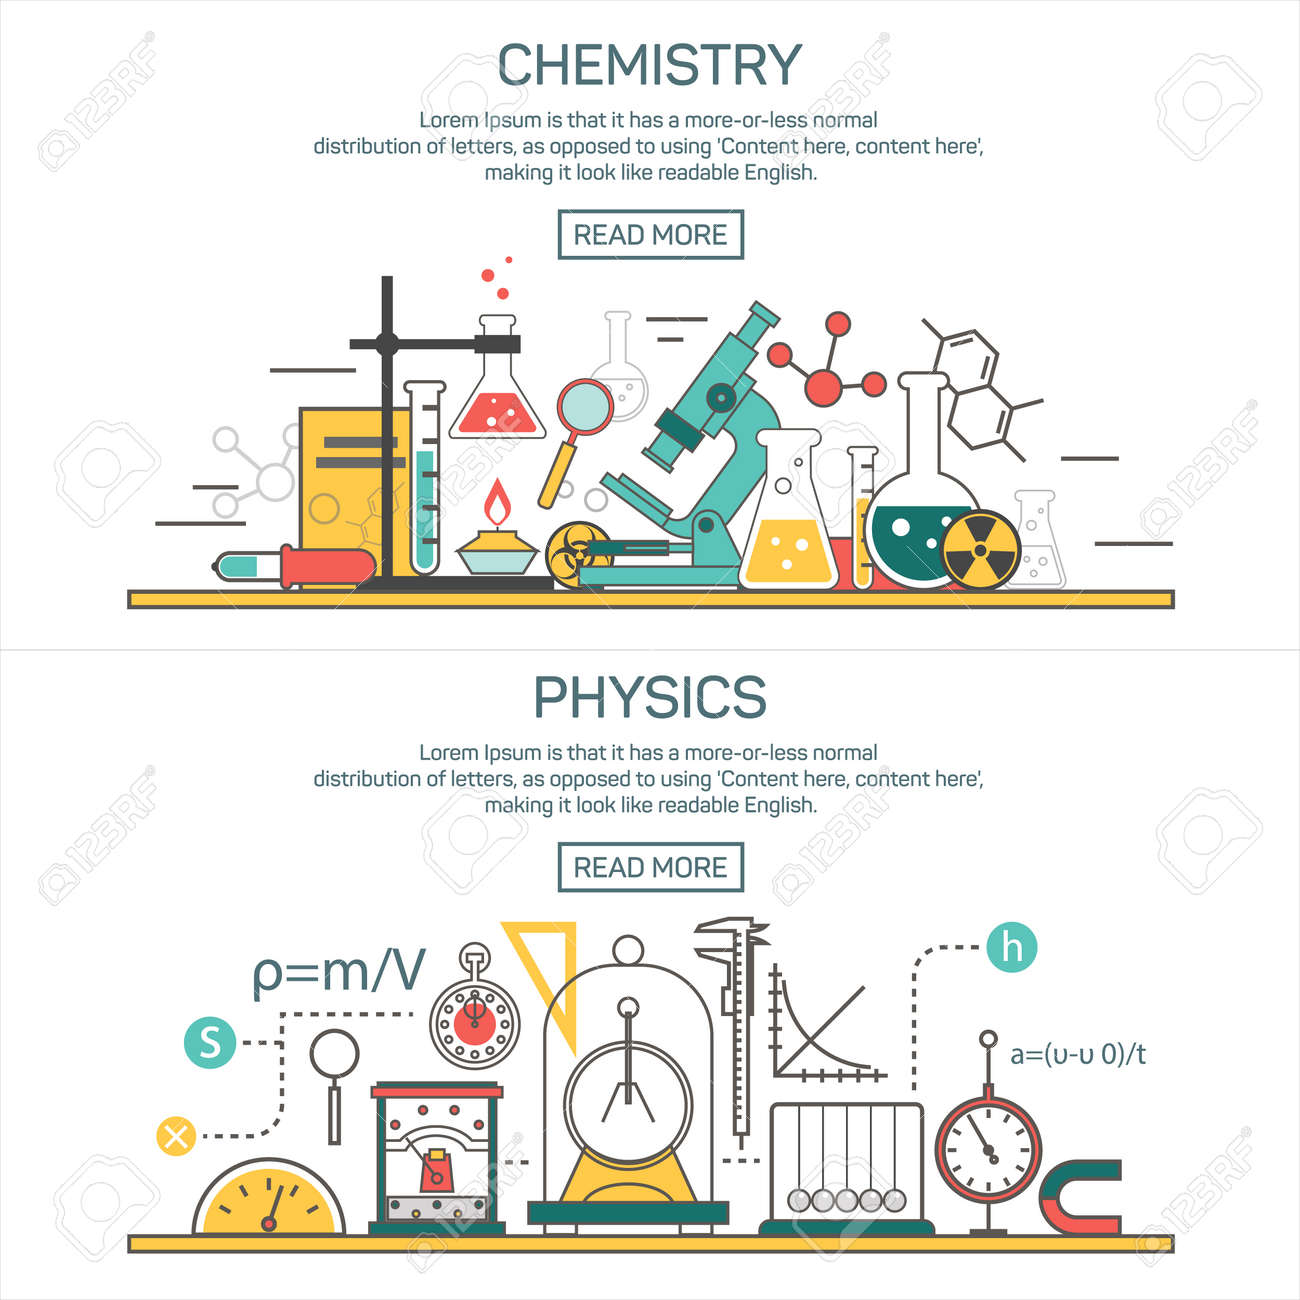 Science banner vector concepts in line style chemistry and physics science banner vector concepts in line style chemistry and physics design elements symbols and ccuart Images